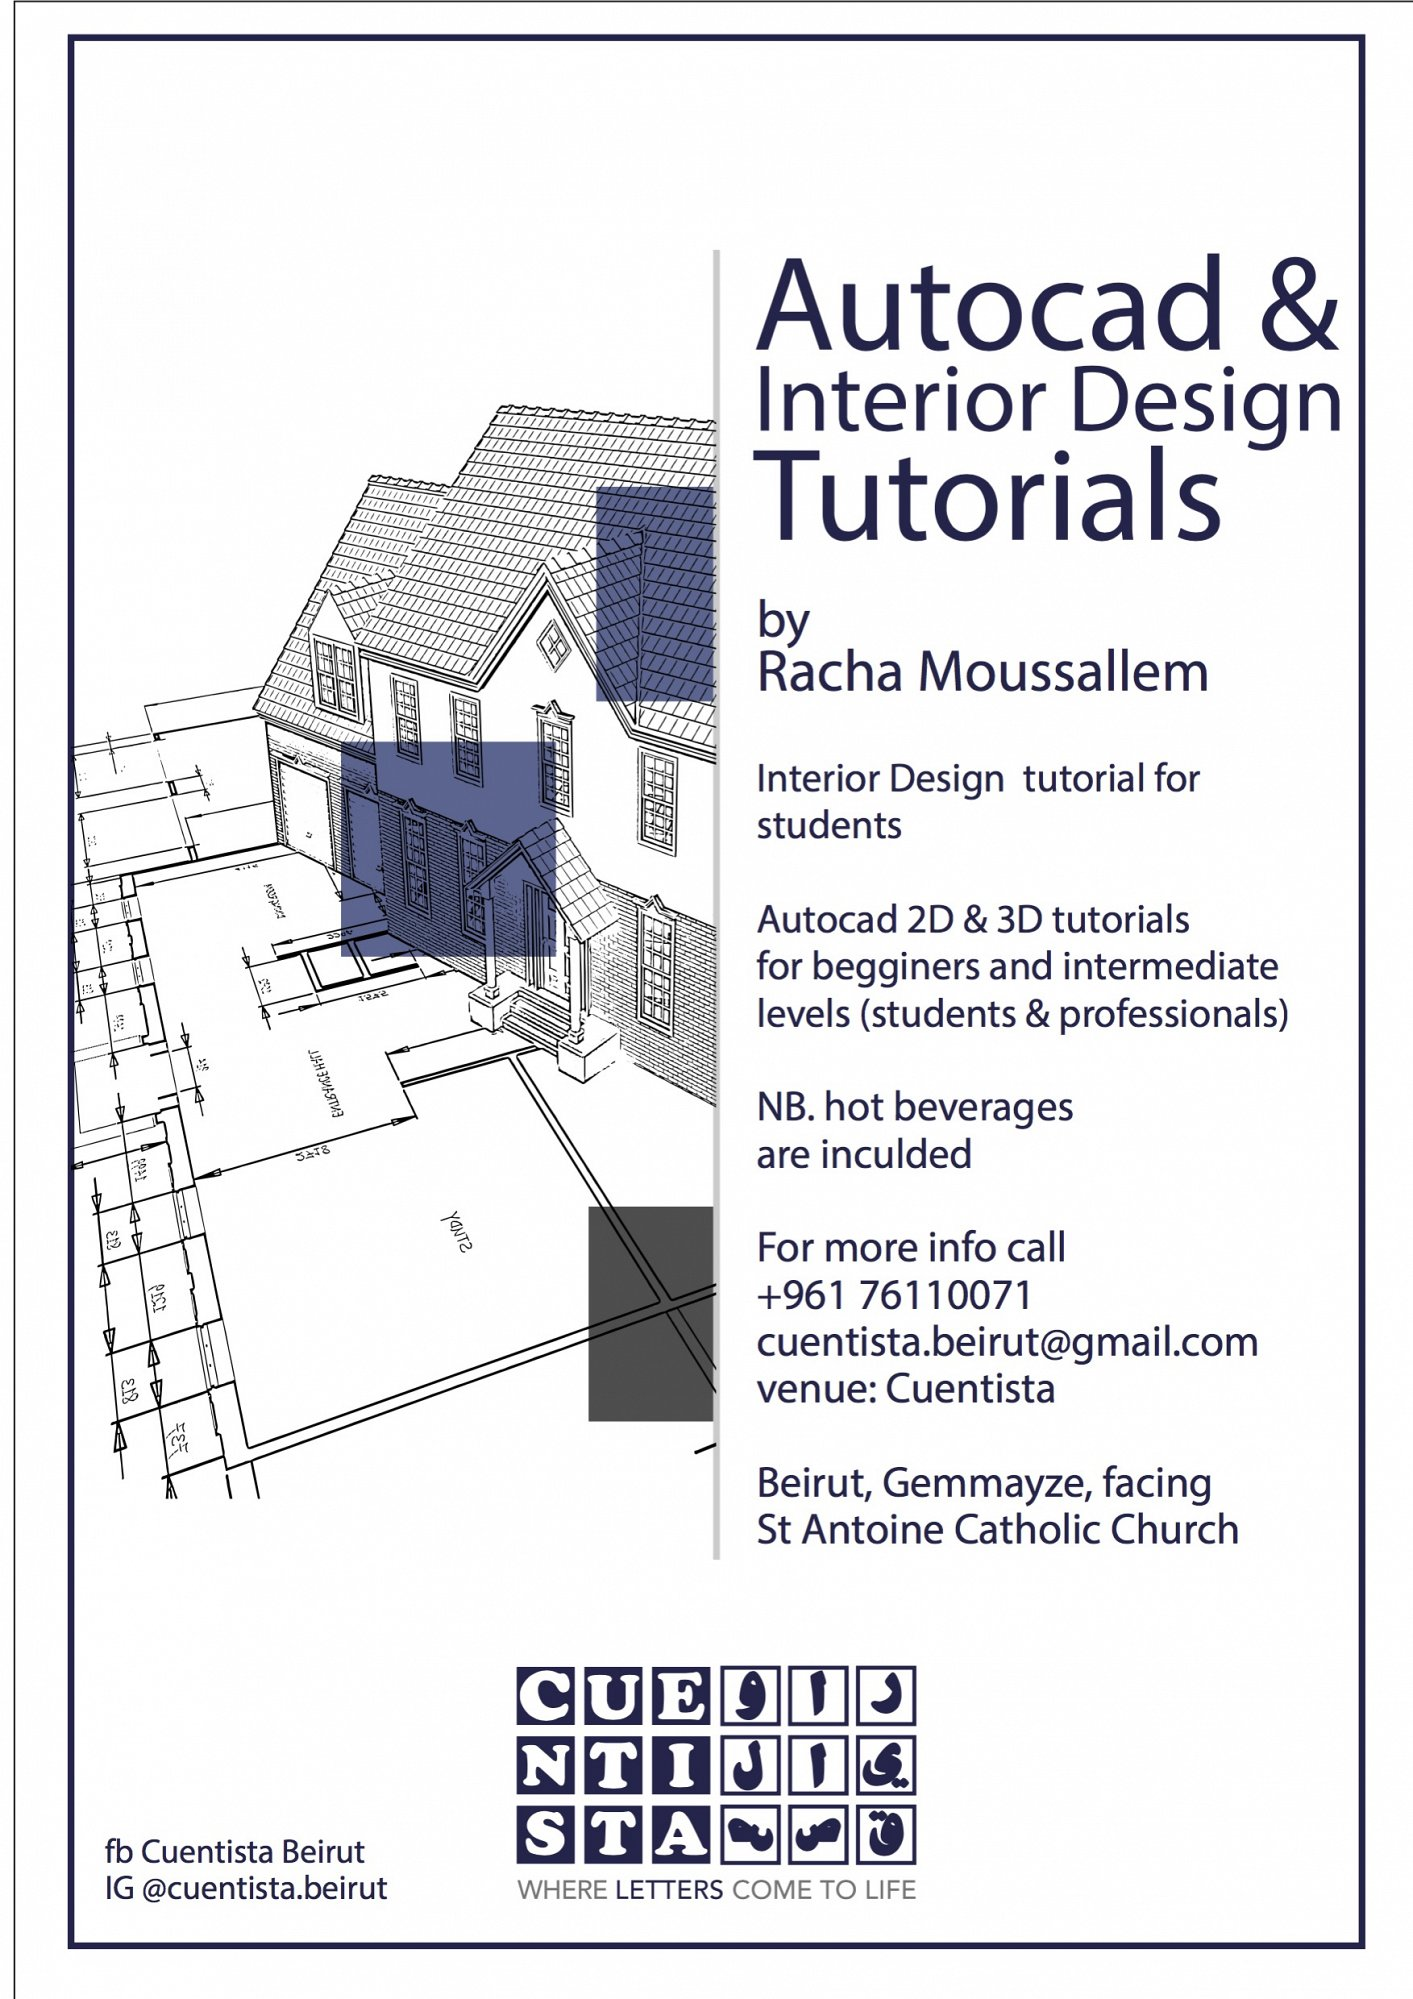 Autocad Interior Design Tutorial Lebtivity